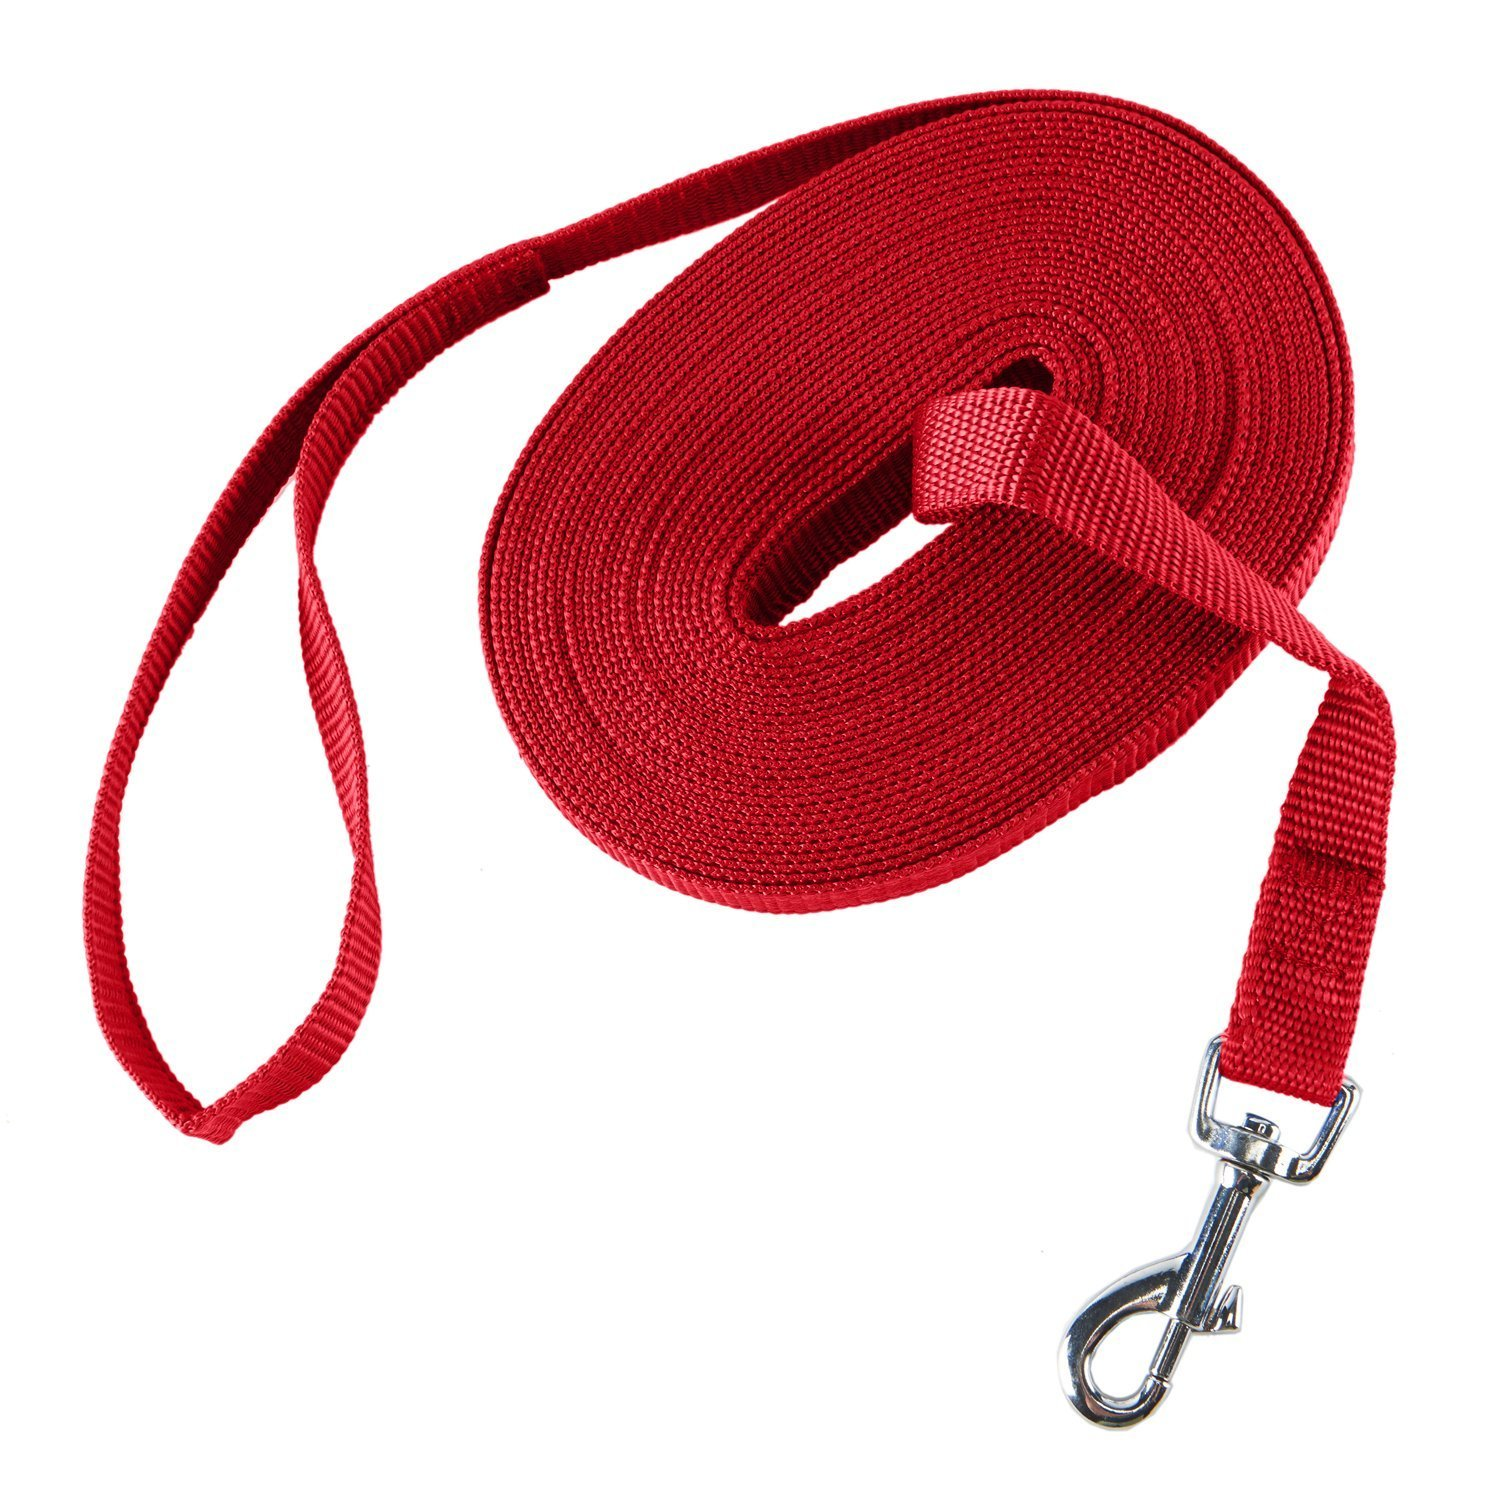 Decoroom Dog Training Lead Long Rope Cotton Nylon Webbing Recall Obedience Line Leash for Pet(30/50Ft)